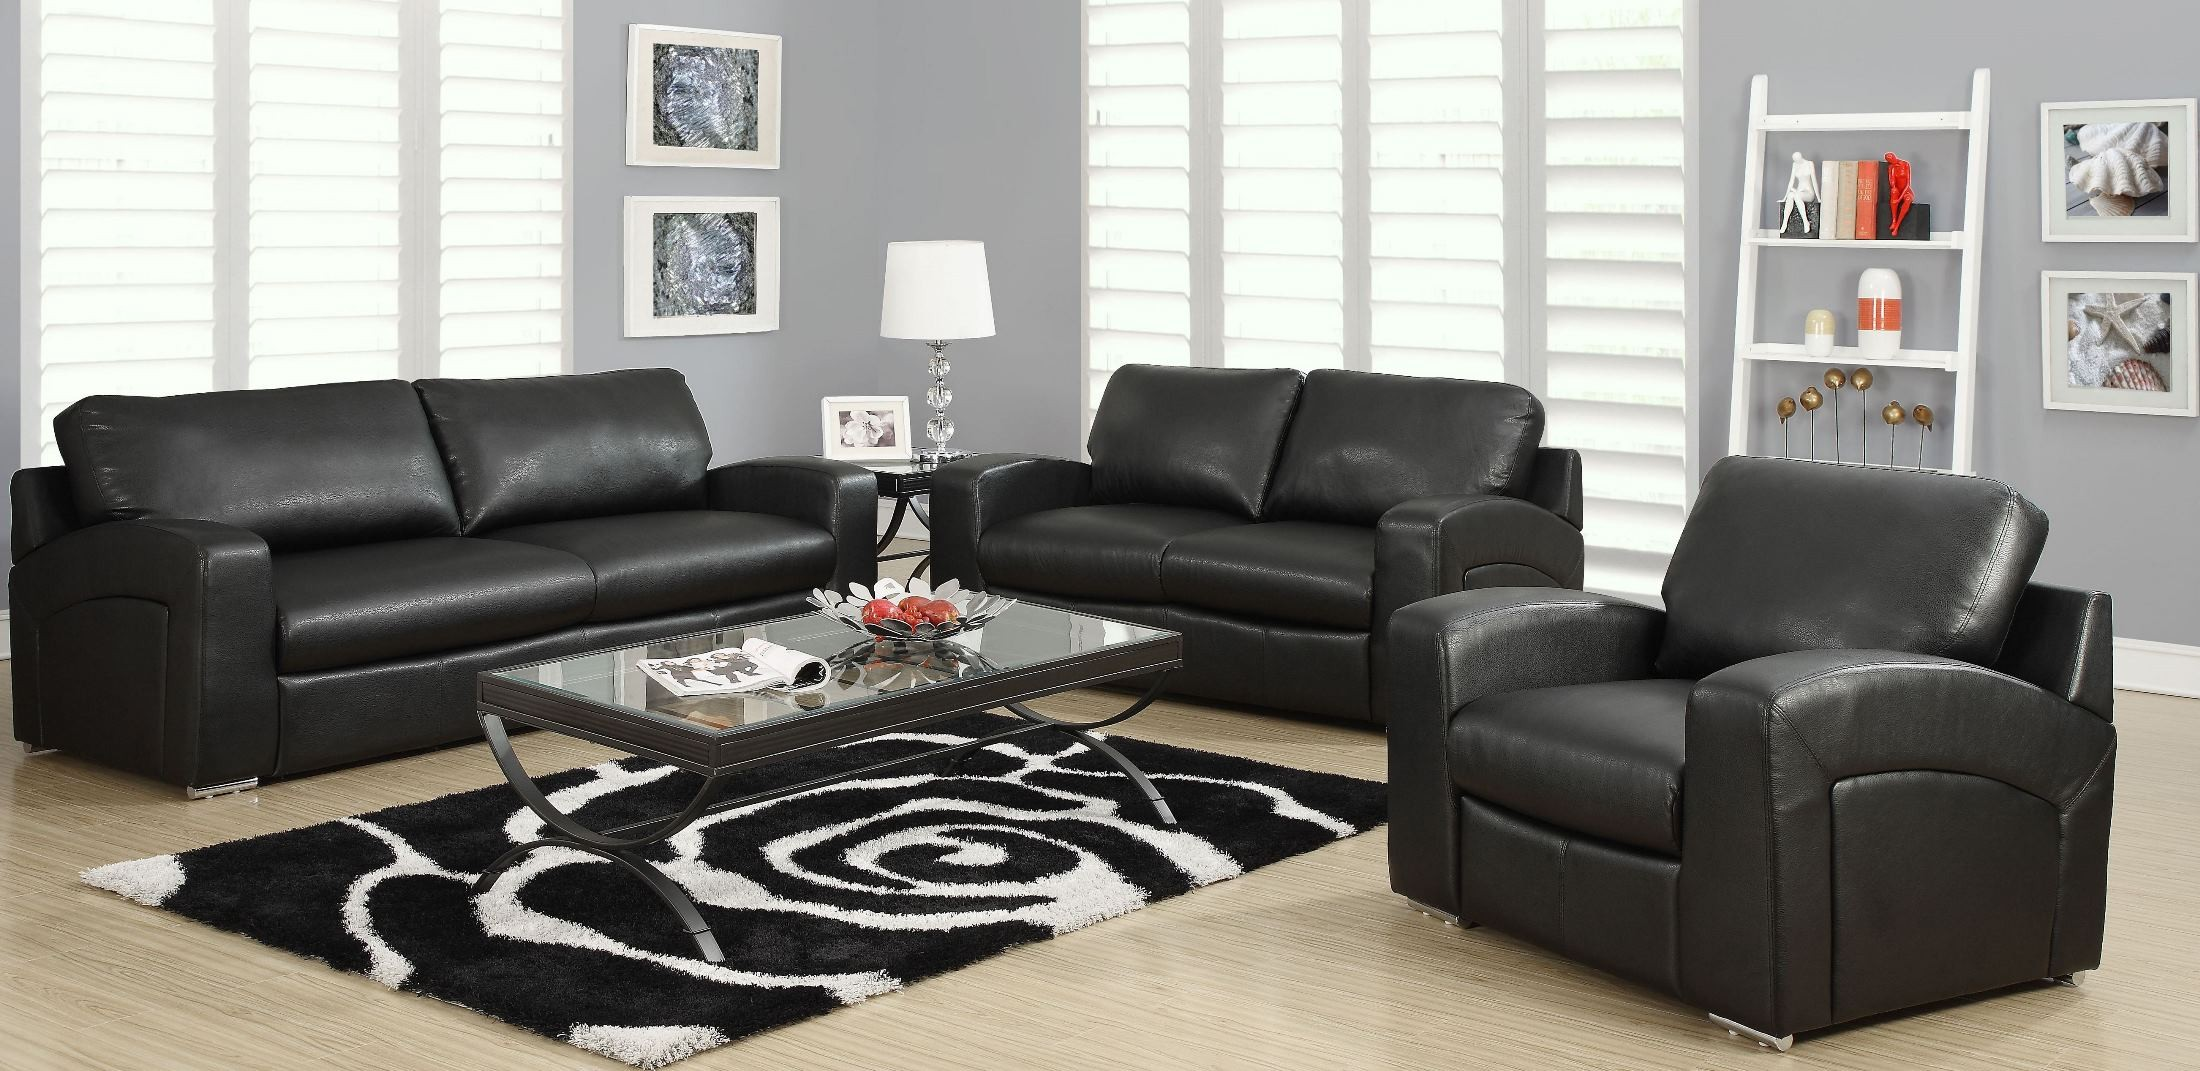 black bonded leather match sloped back living room set from monarch 8503bk coleman furniture. Black Bedroom Furniture Sets. Home Design Ideas